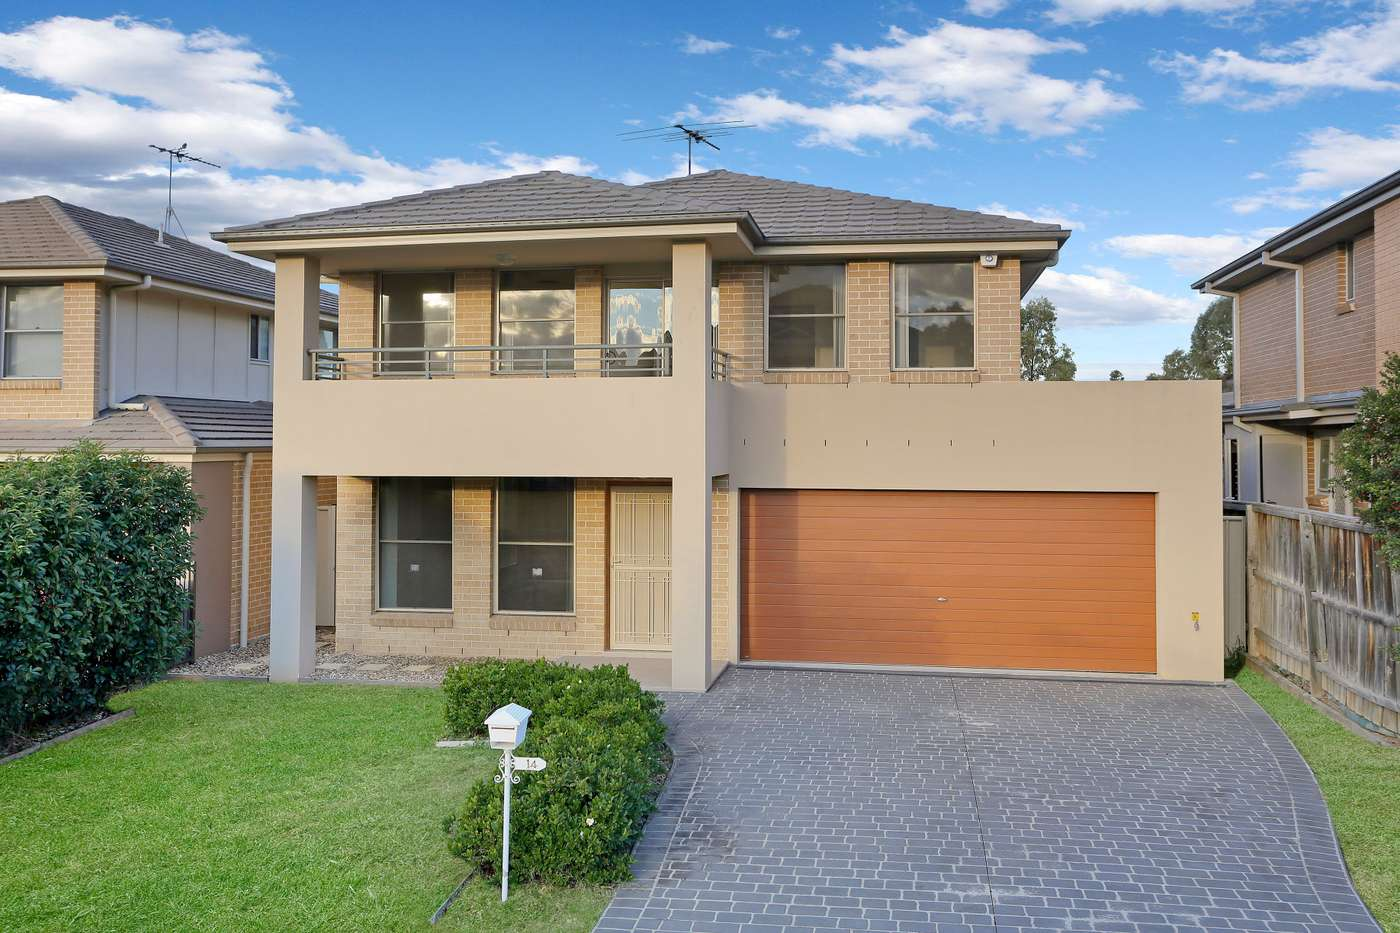 Main view of Homely house listing, 14 Rosebrook Avenue, Kellyville Ridge, NSW 2155